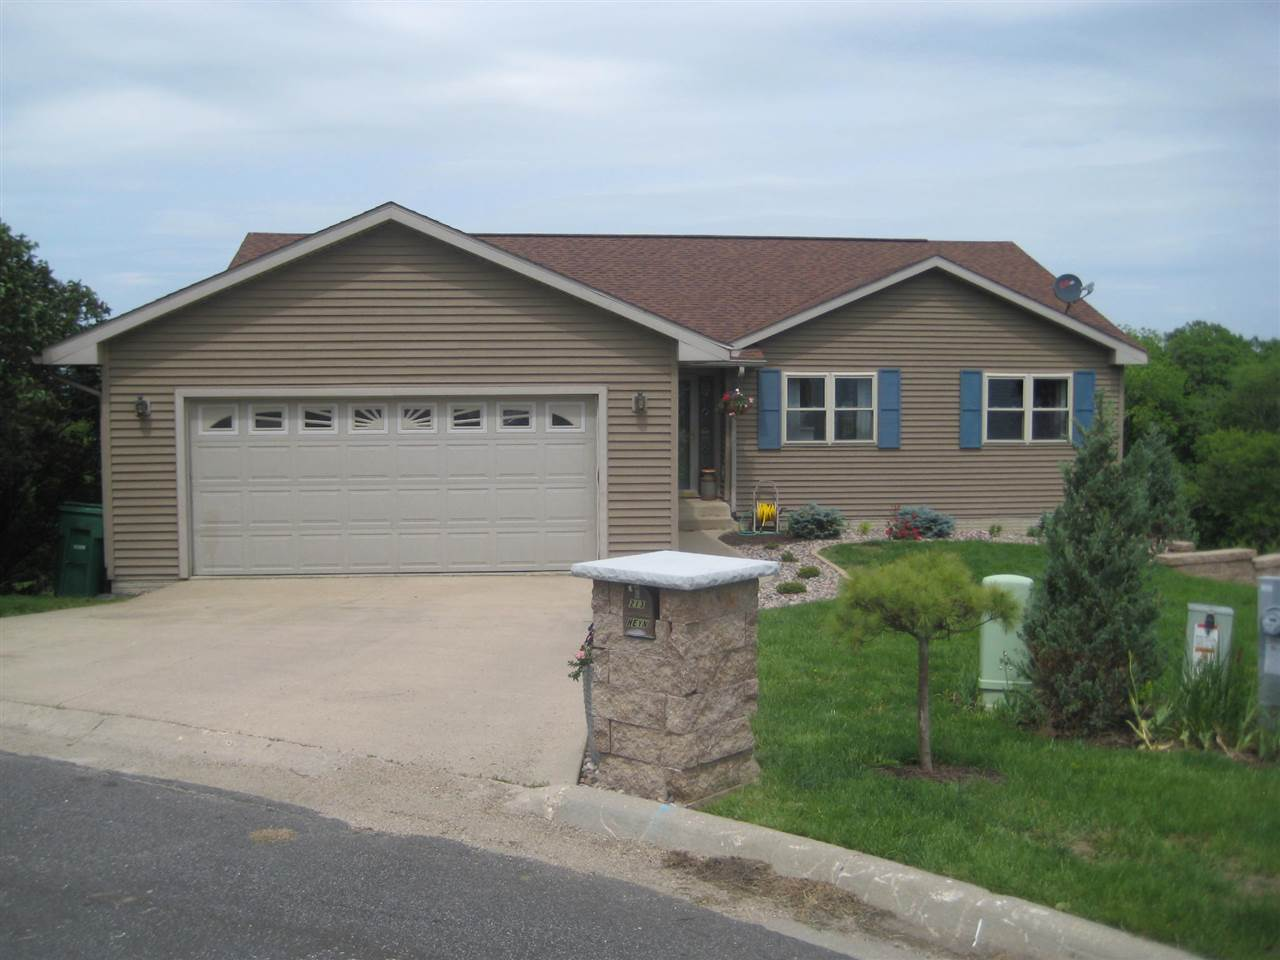 south west wisconsin real estate, north east iowa homes, prairie